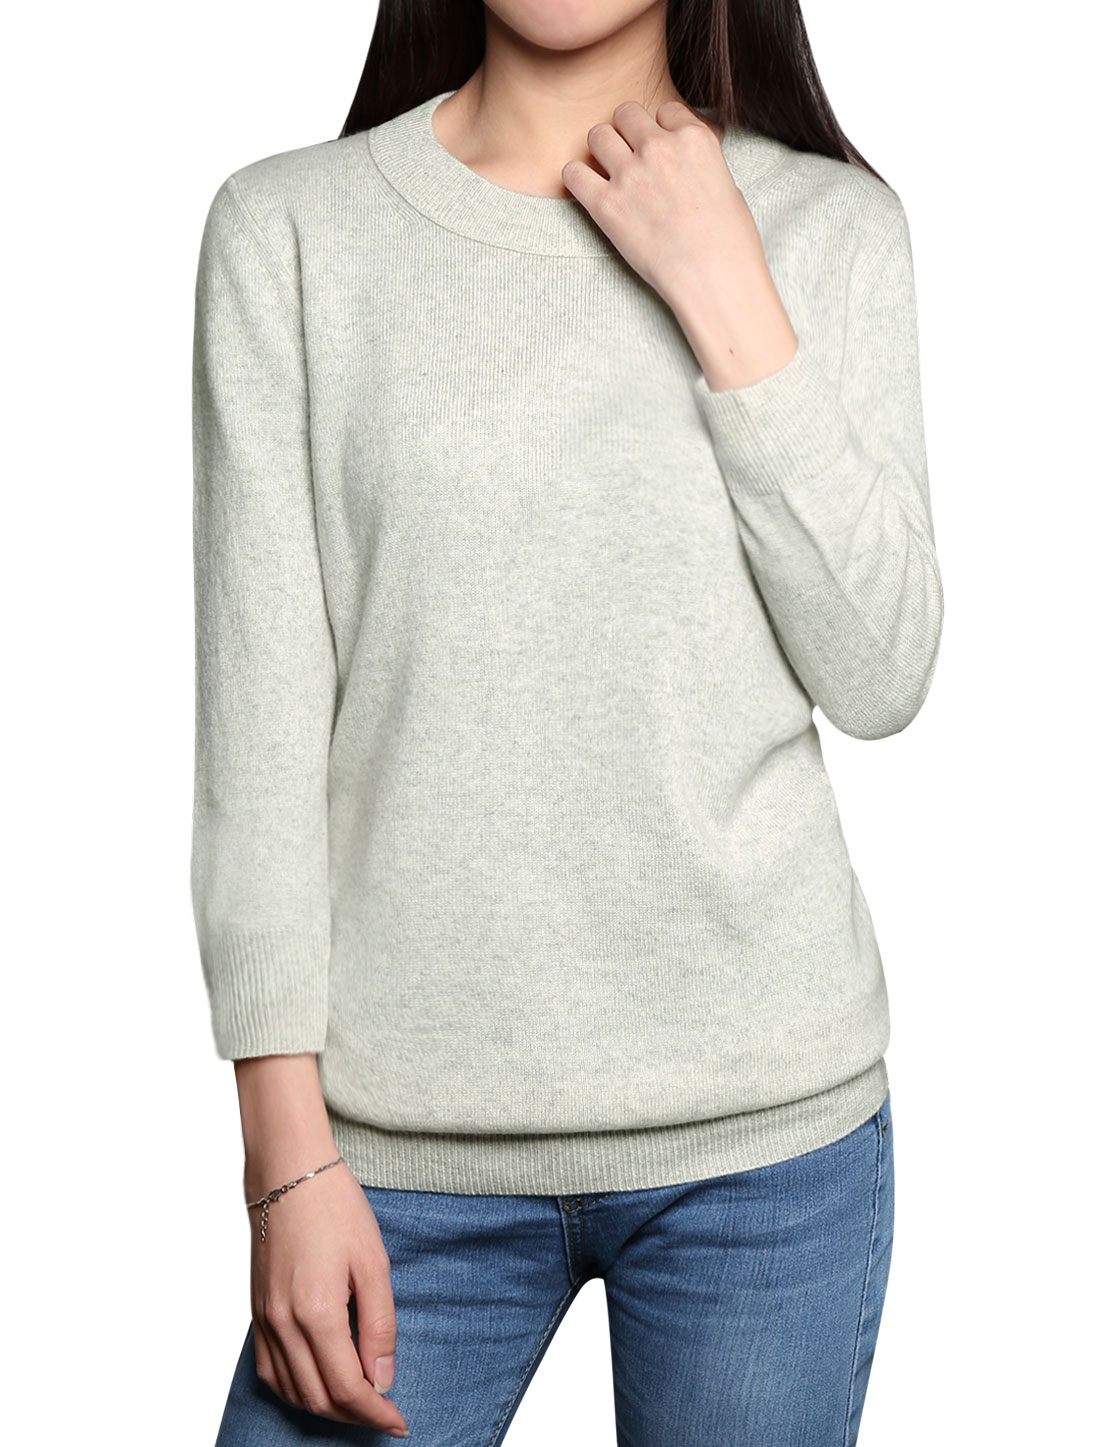 Ladies Crew Neck 3/4 Sleeves Cashmere Pullover Gray M